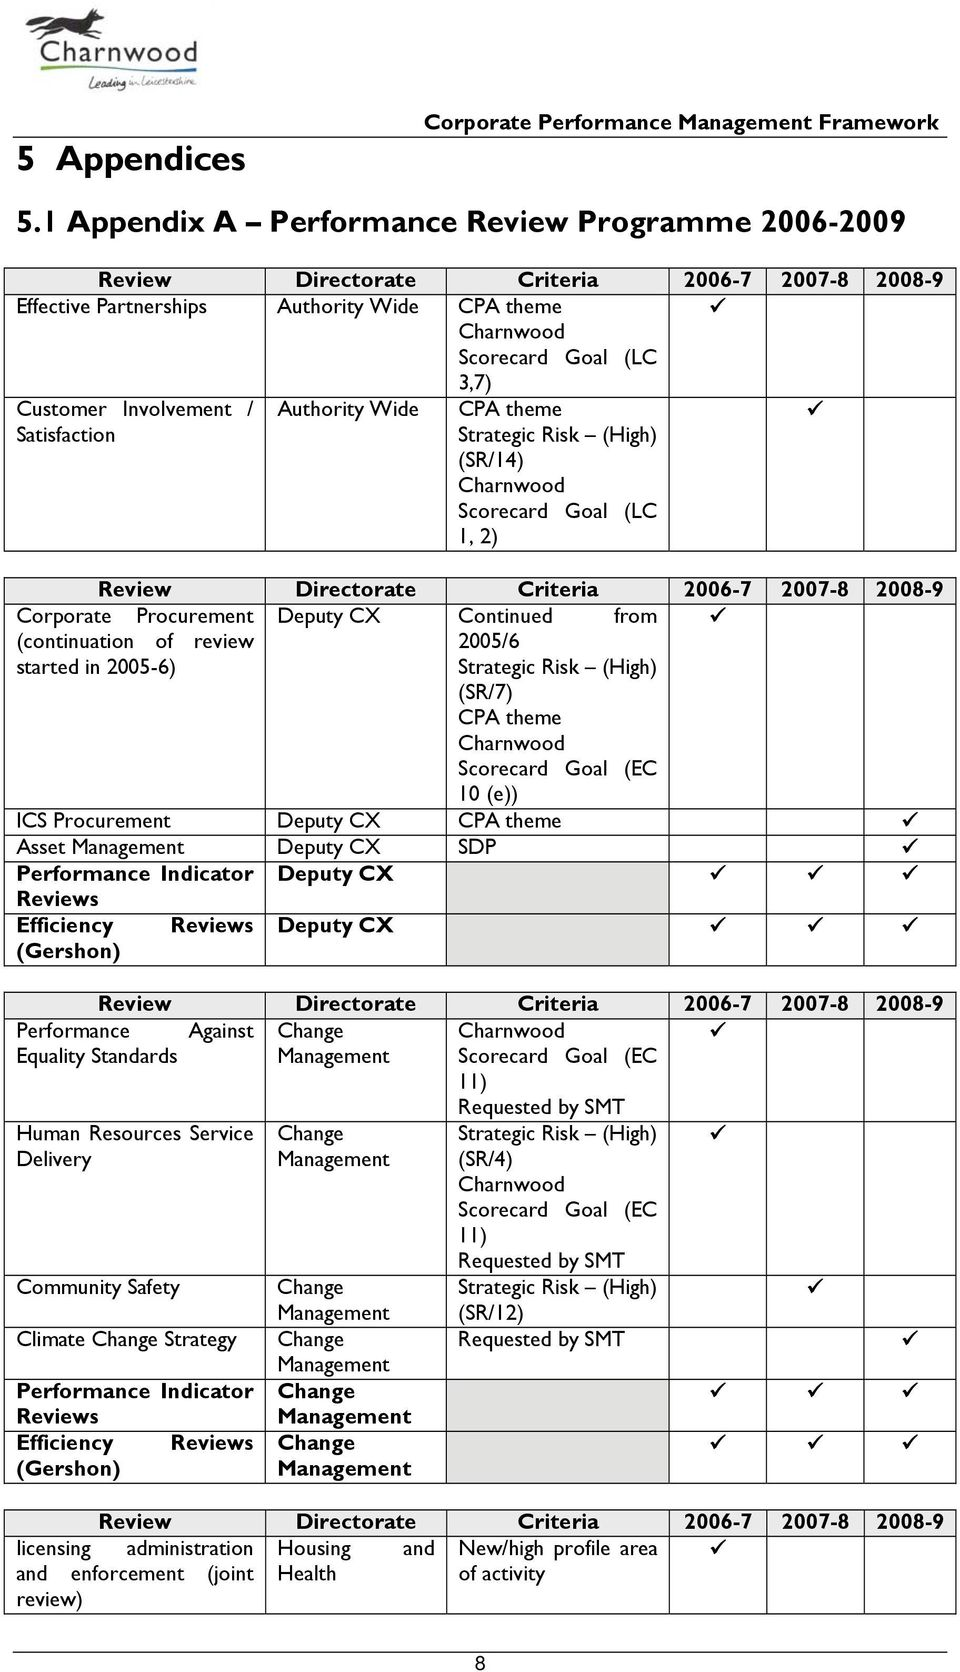 Involvement / Authority Wide CPA theme Satisfaction Strategic Risk (High) (SR/14) Charnwood Scorecard Goal (LC 1, 2) Review Directorate Criteria 2006-7 2007-8 2008-9 Corporate Procurement Deputy CX